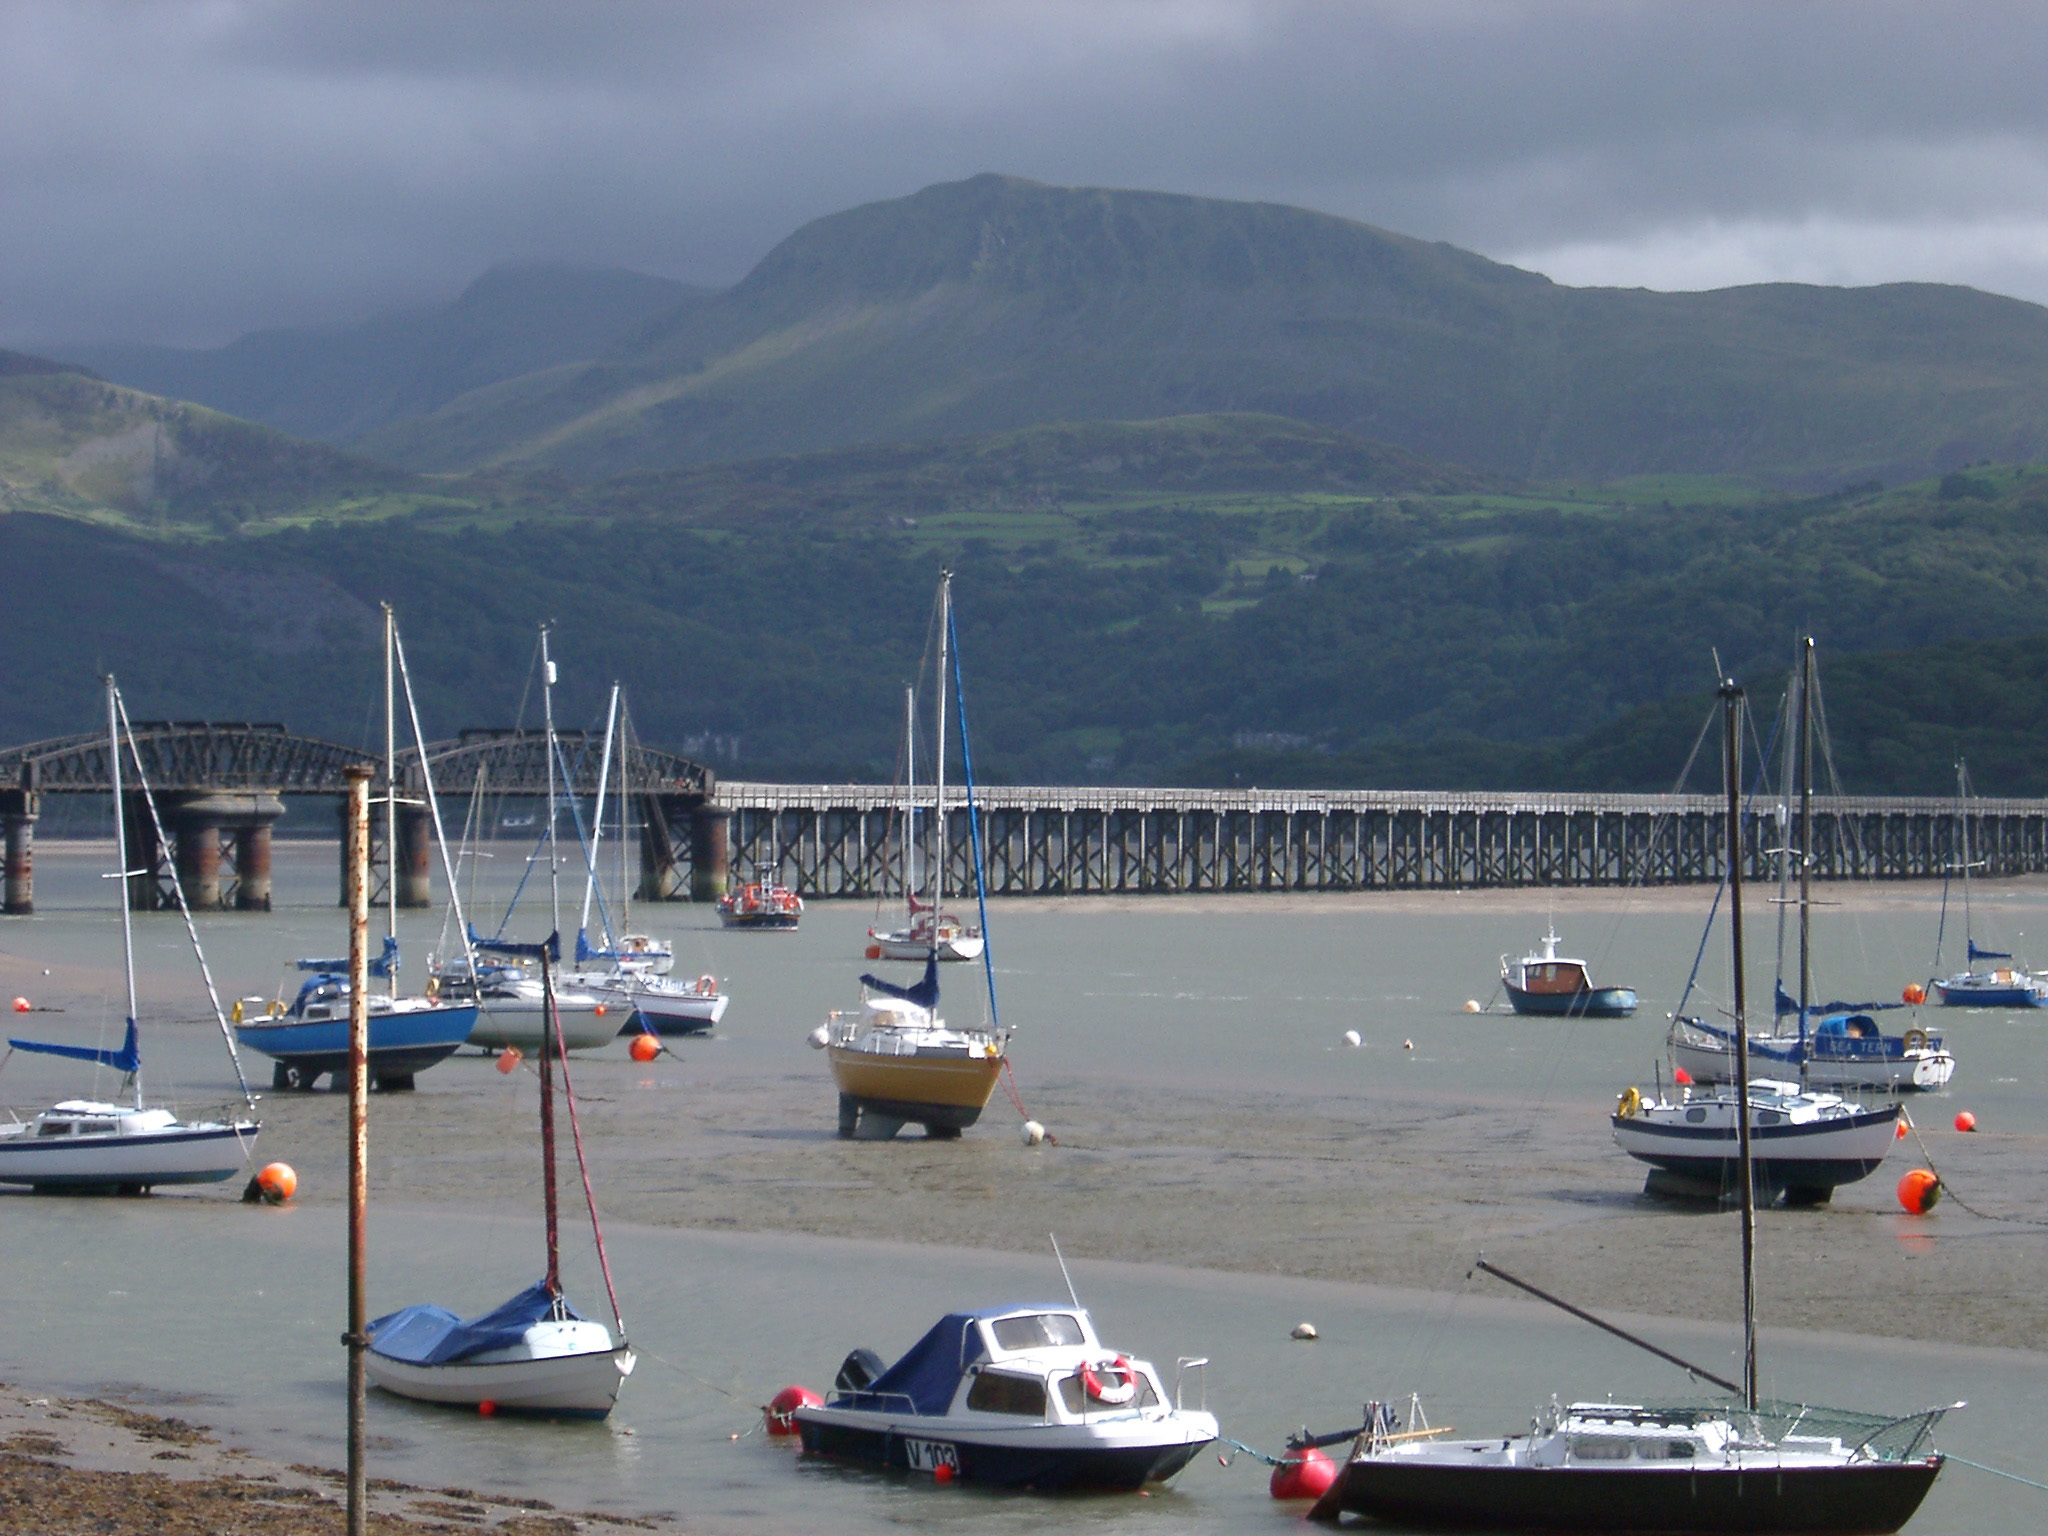 Fishing boats moored in the harbour at Barmouth with the steel railway viaduct crossing the water behind them against a mountain backdrop